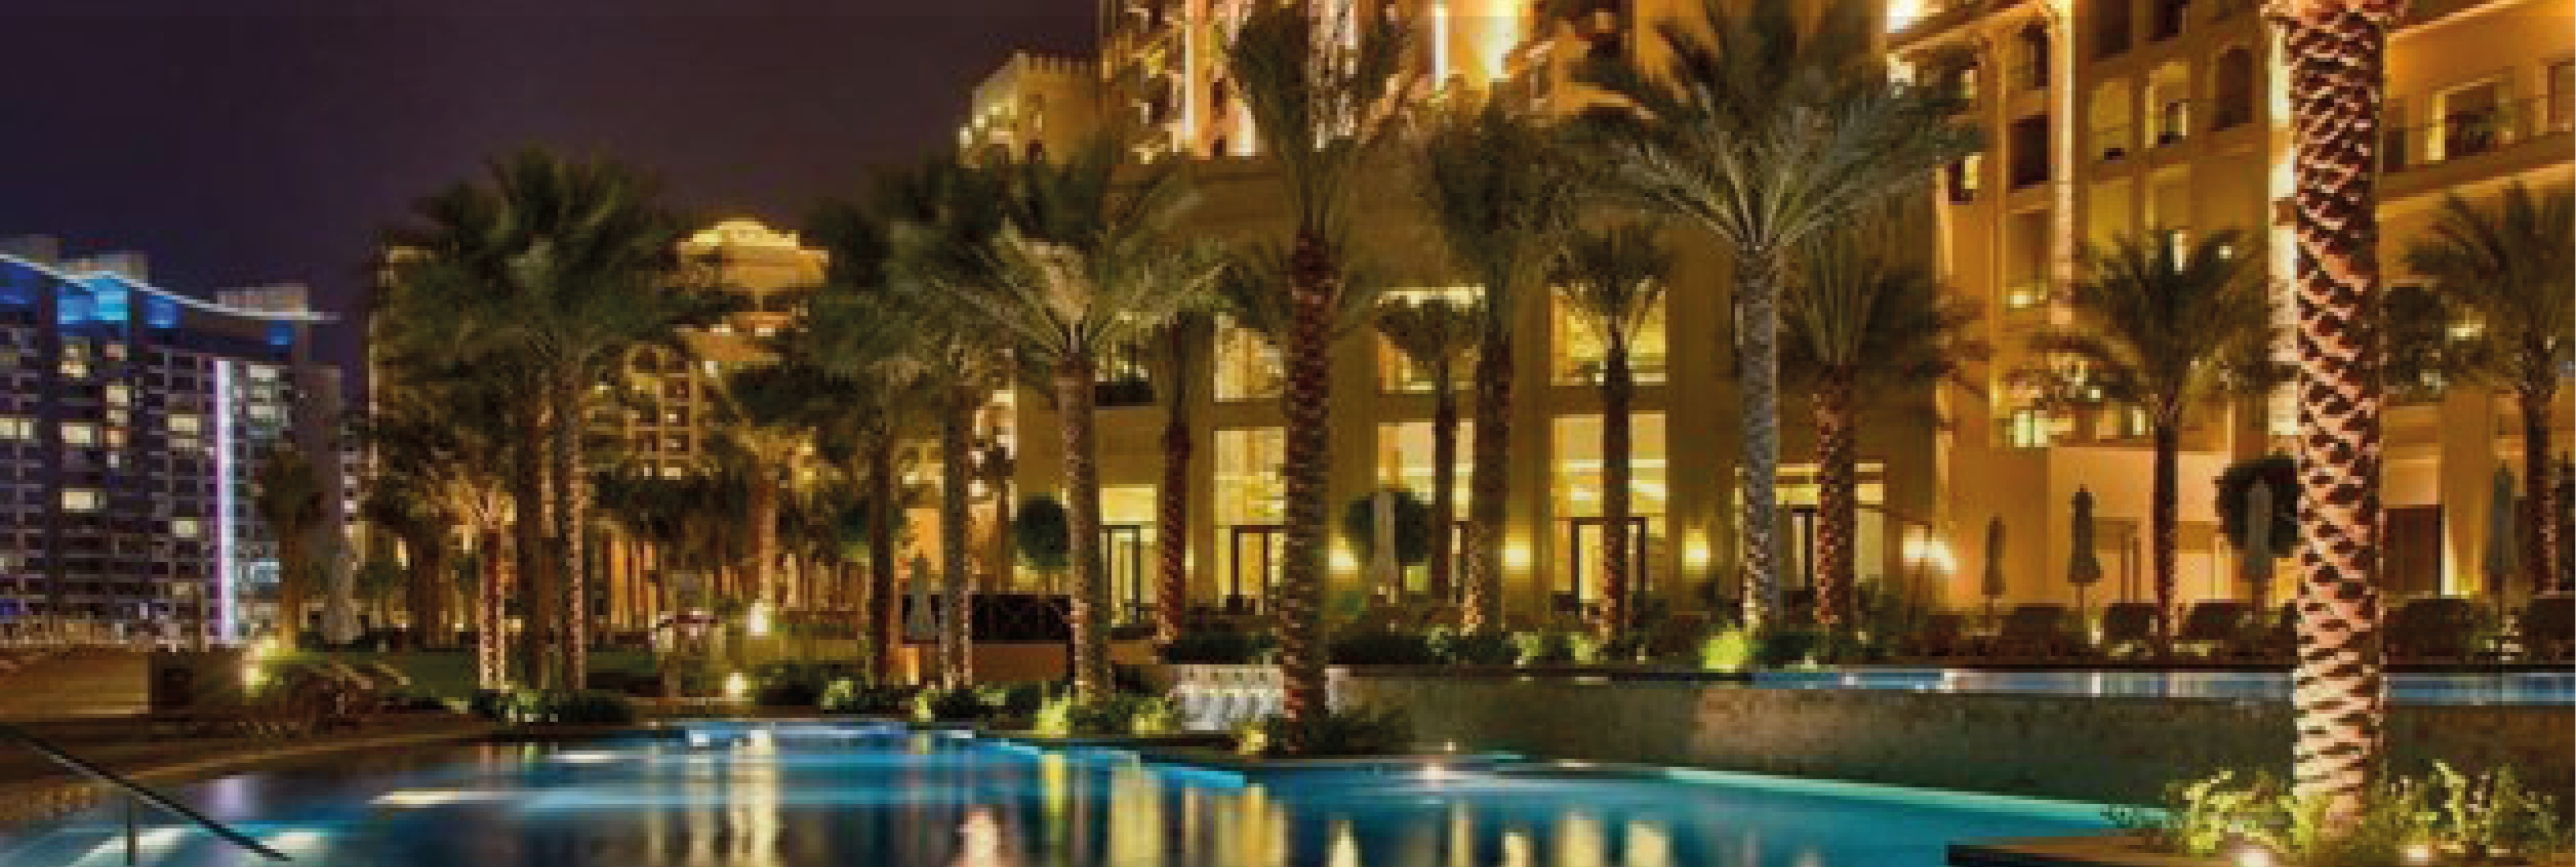 Fairmont The Palm is saving $150,000 per year.jpg